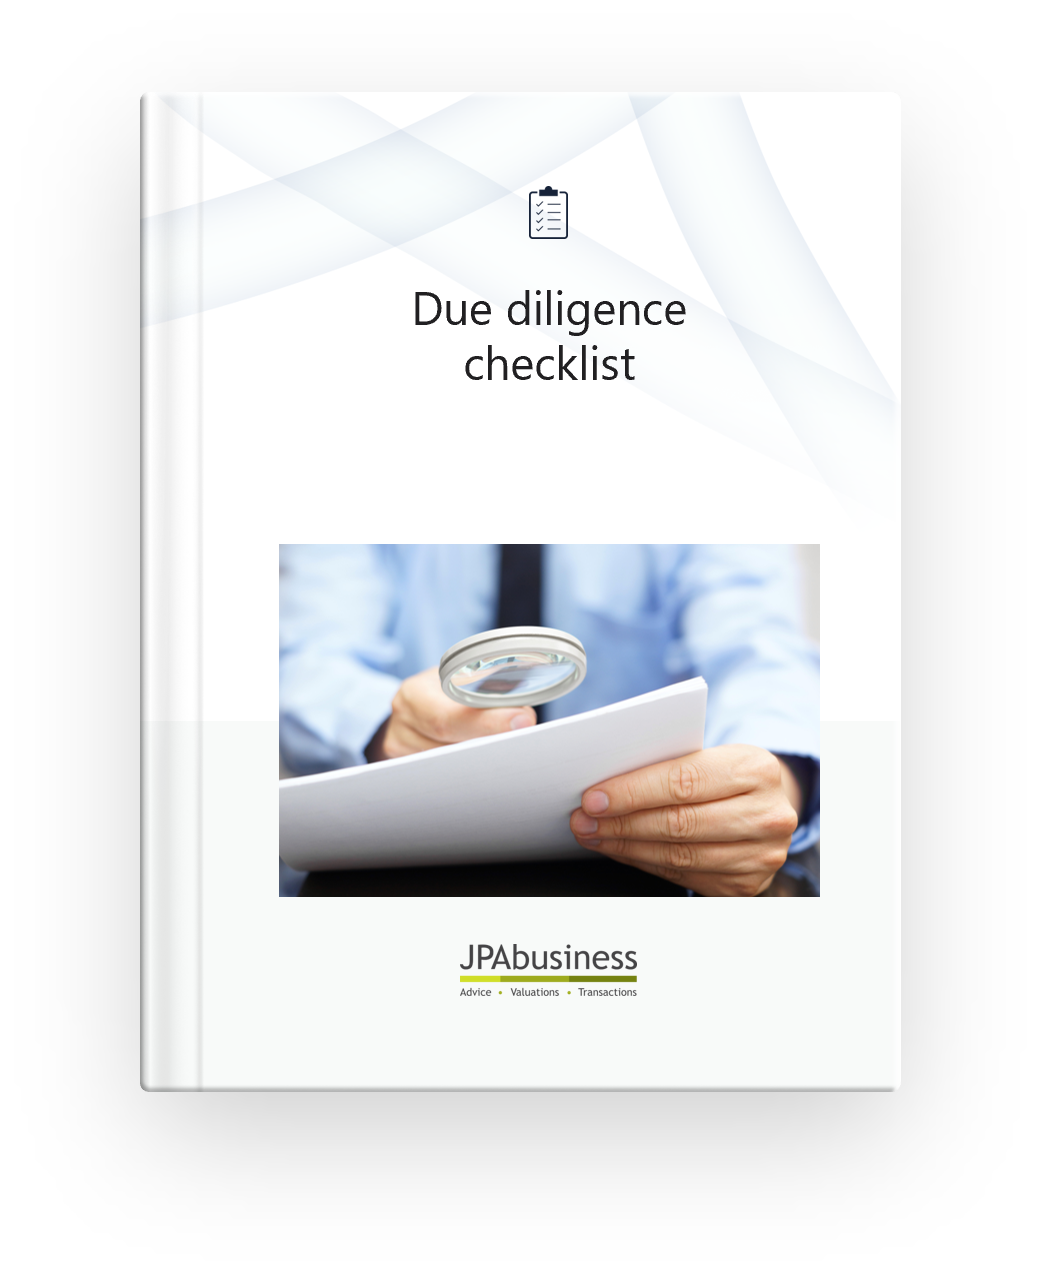 The_Due_Diligence_Checklist_JPAbusiness